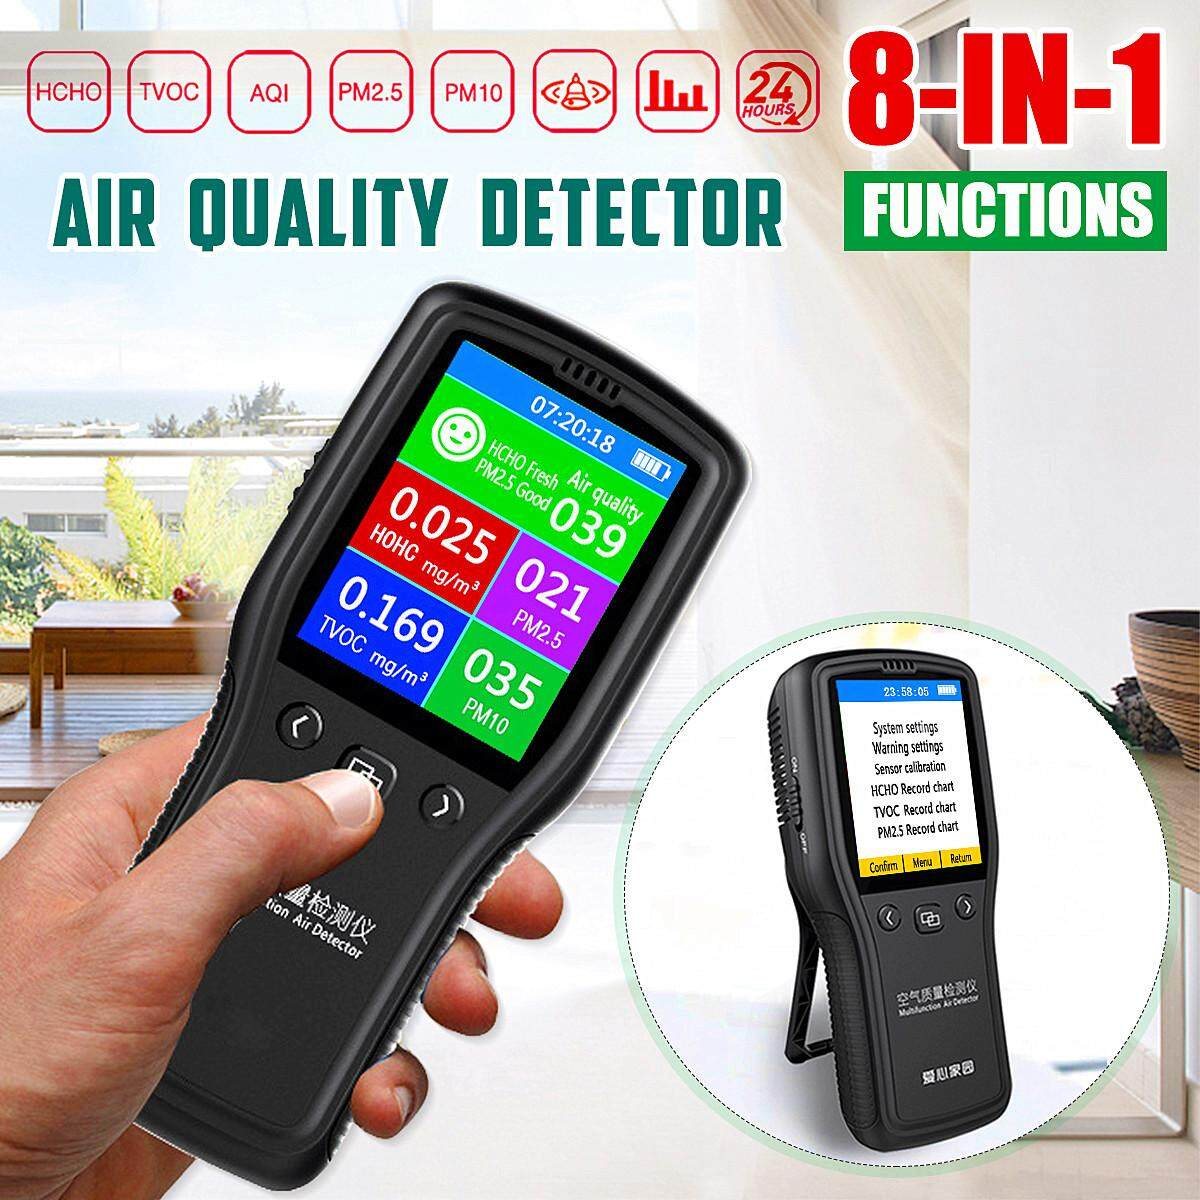 【free Shipping + Super Deal + Limited Offer】8in1 Air Quality Detector Pm2.5 Pm10 Tvoc Hcho Formaldehyde Air Quality Monitor By Autoleader.